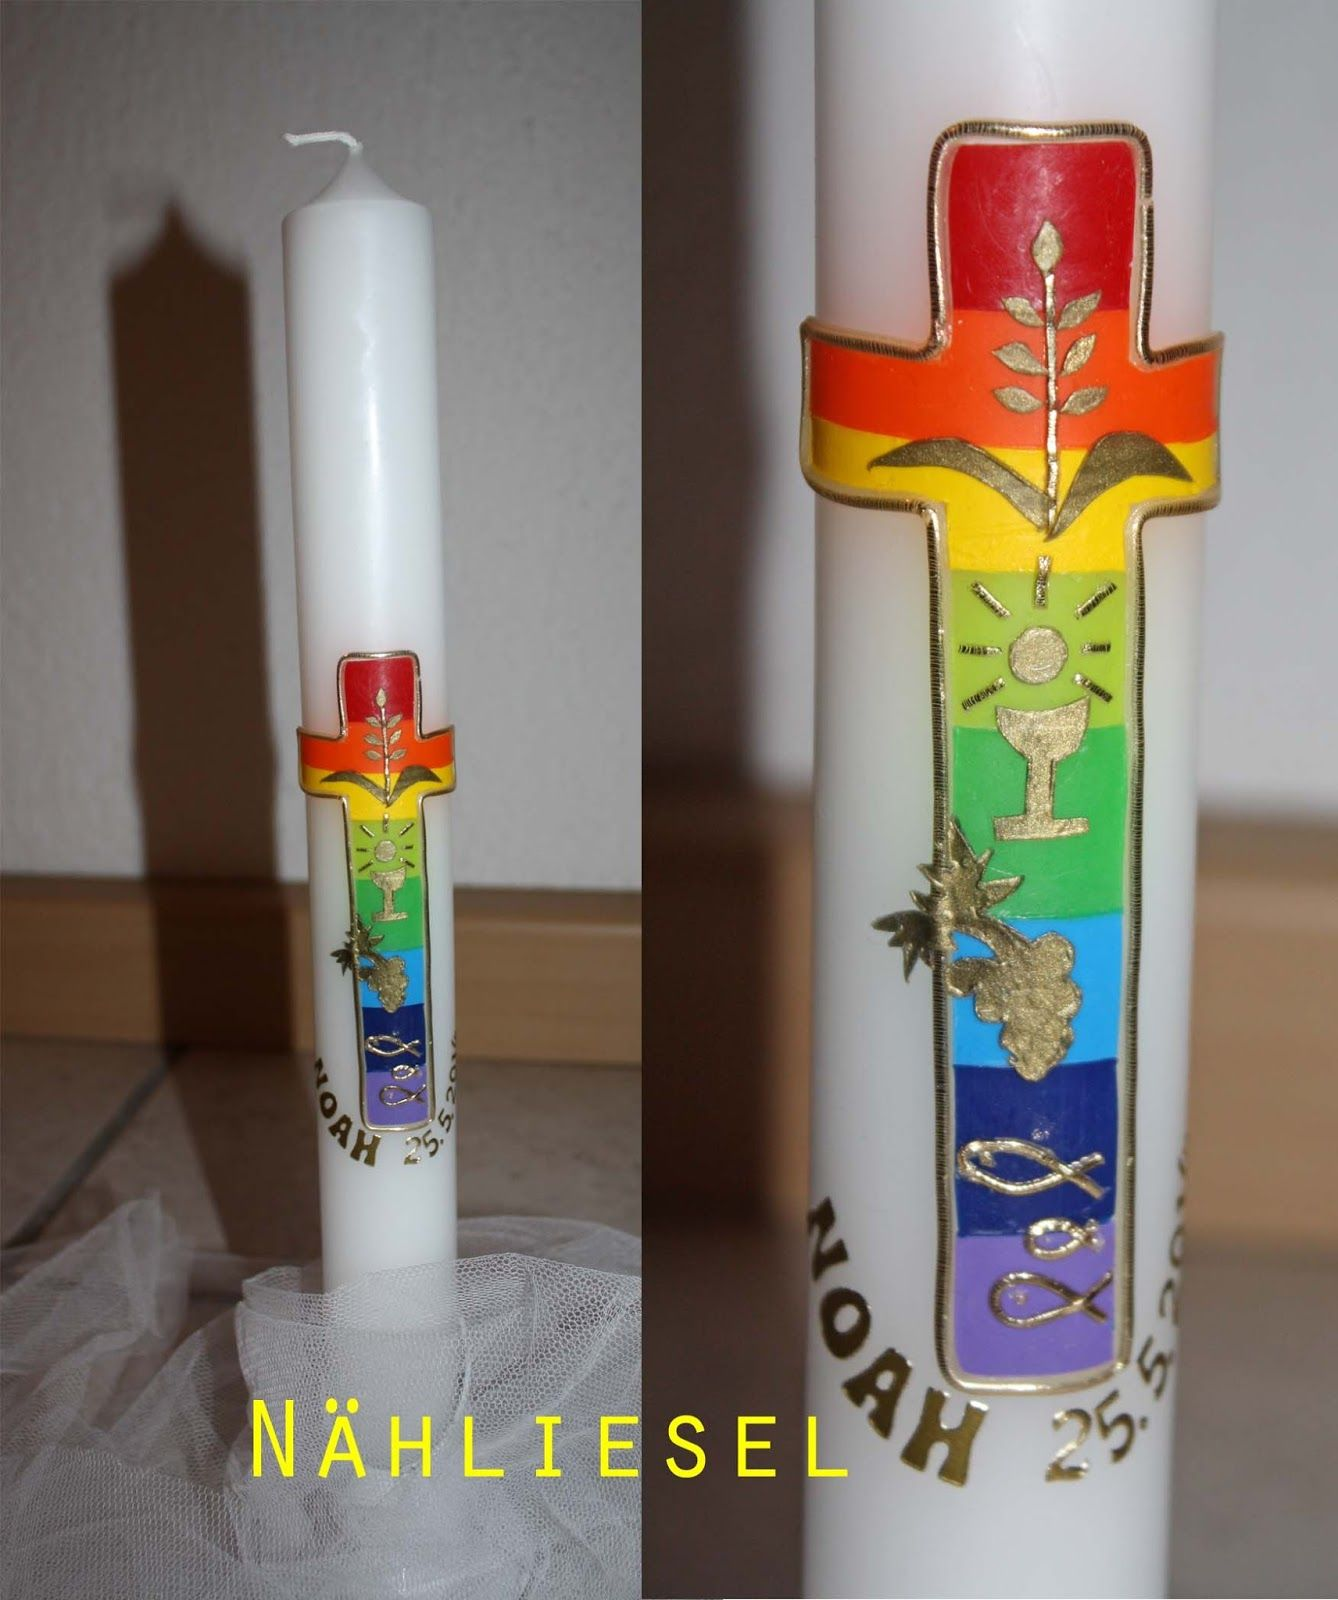 Taufkerzen Bilder Kommunionkerze Candle For The First Communion Alles